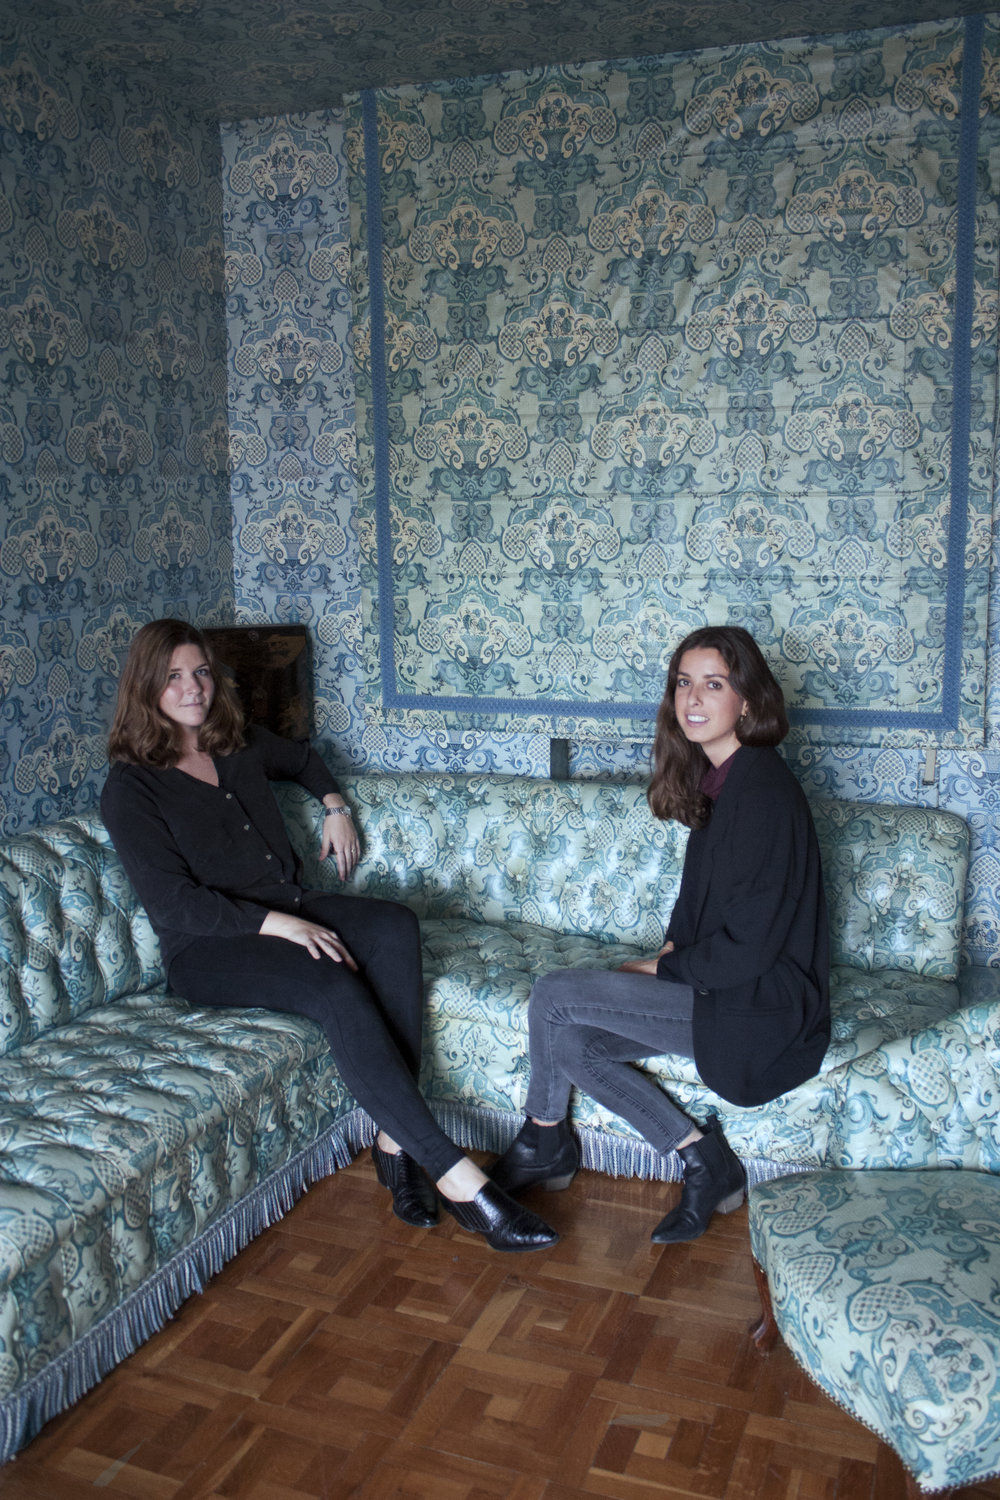 Designers Paloma Canut and Ana Marroquín.